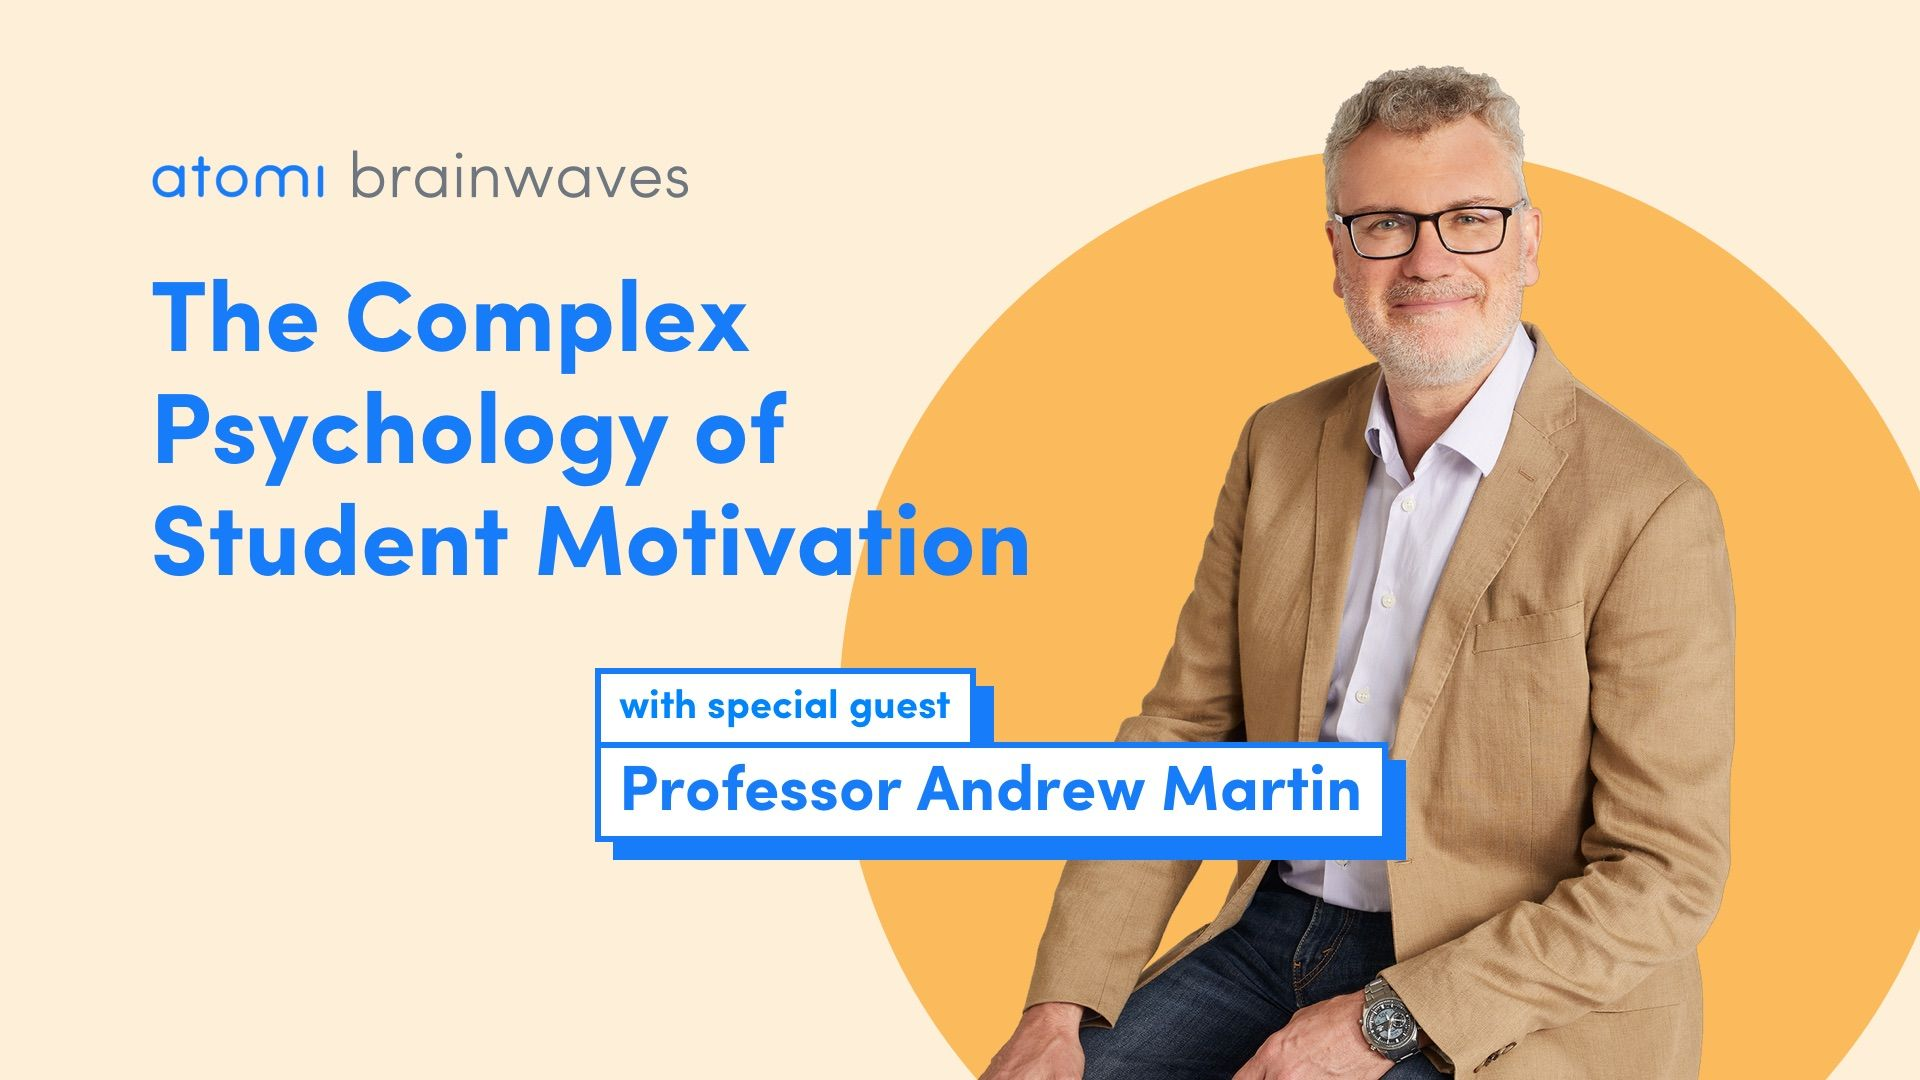 Atomi Brainwaves Podcast: Professor Andrew Martin on the complex psychology of student motivation